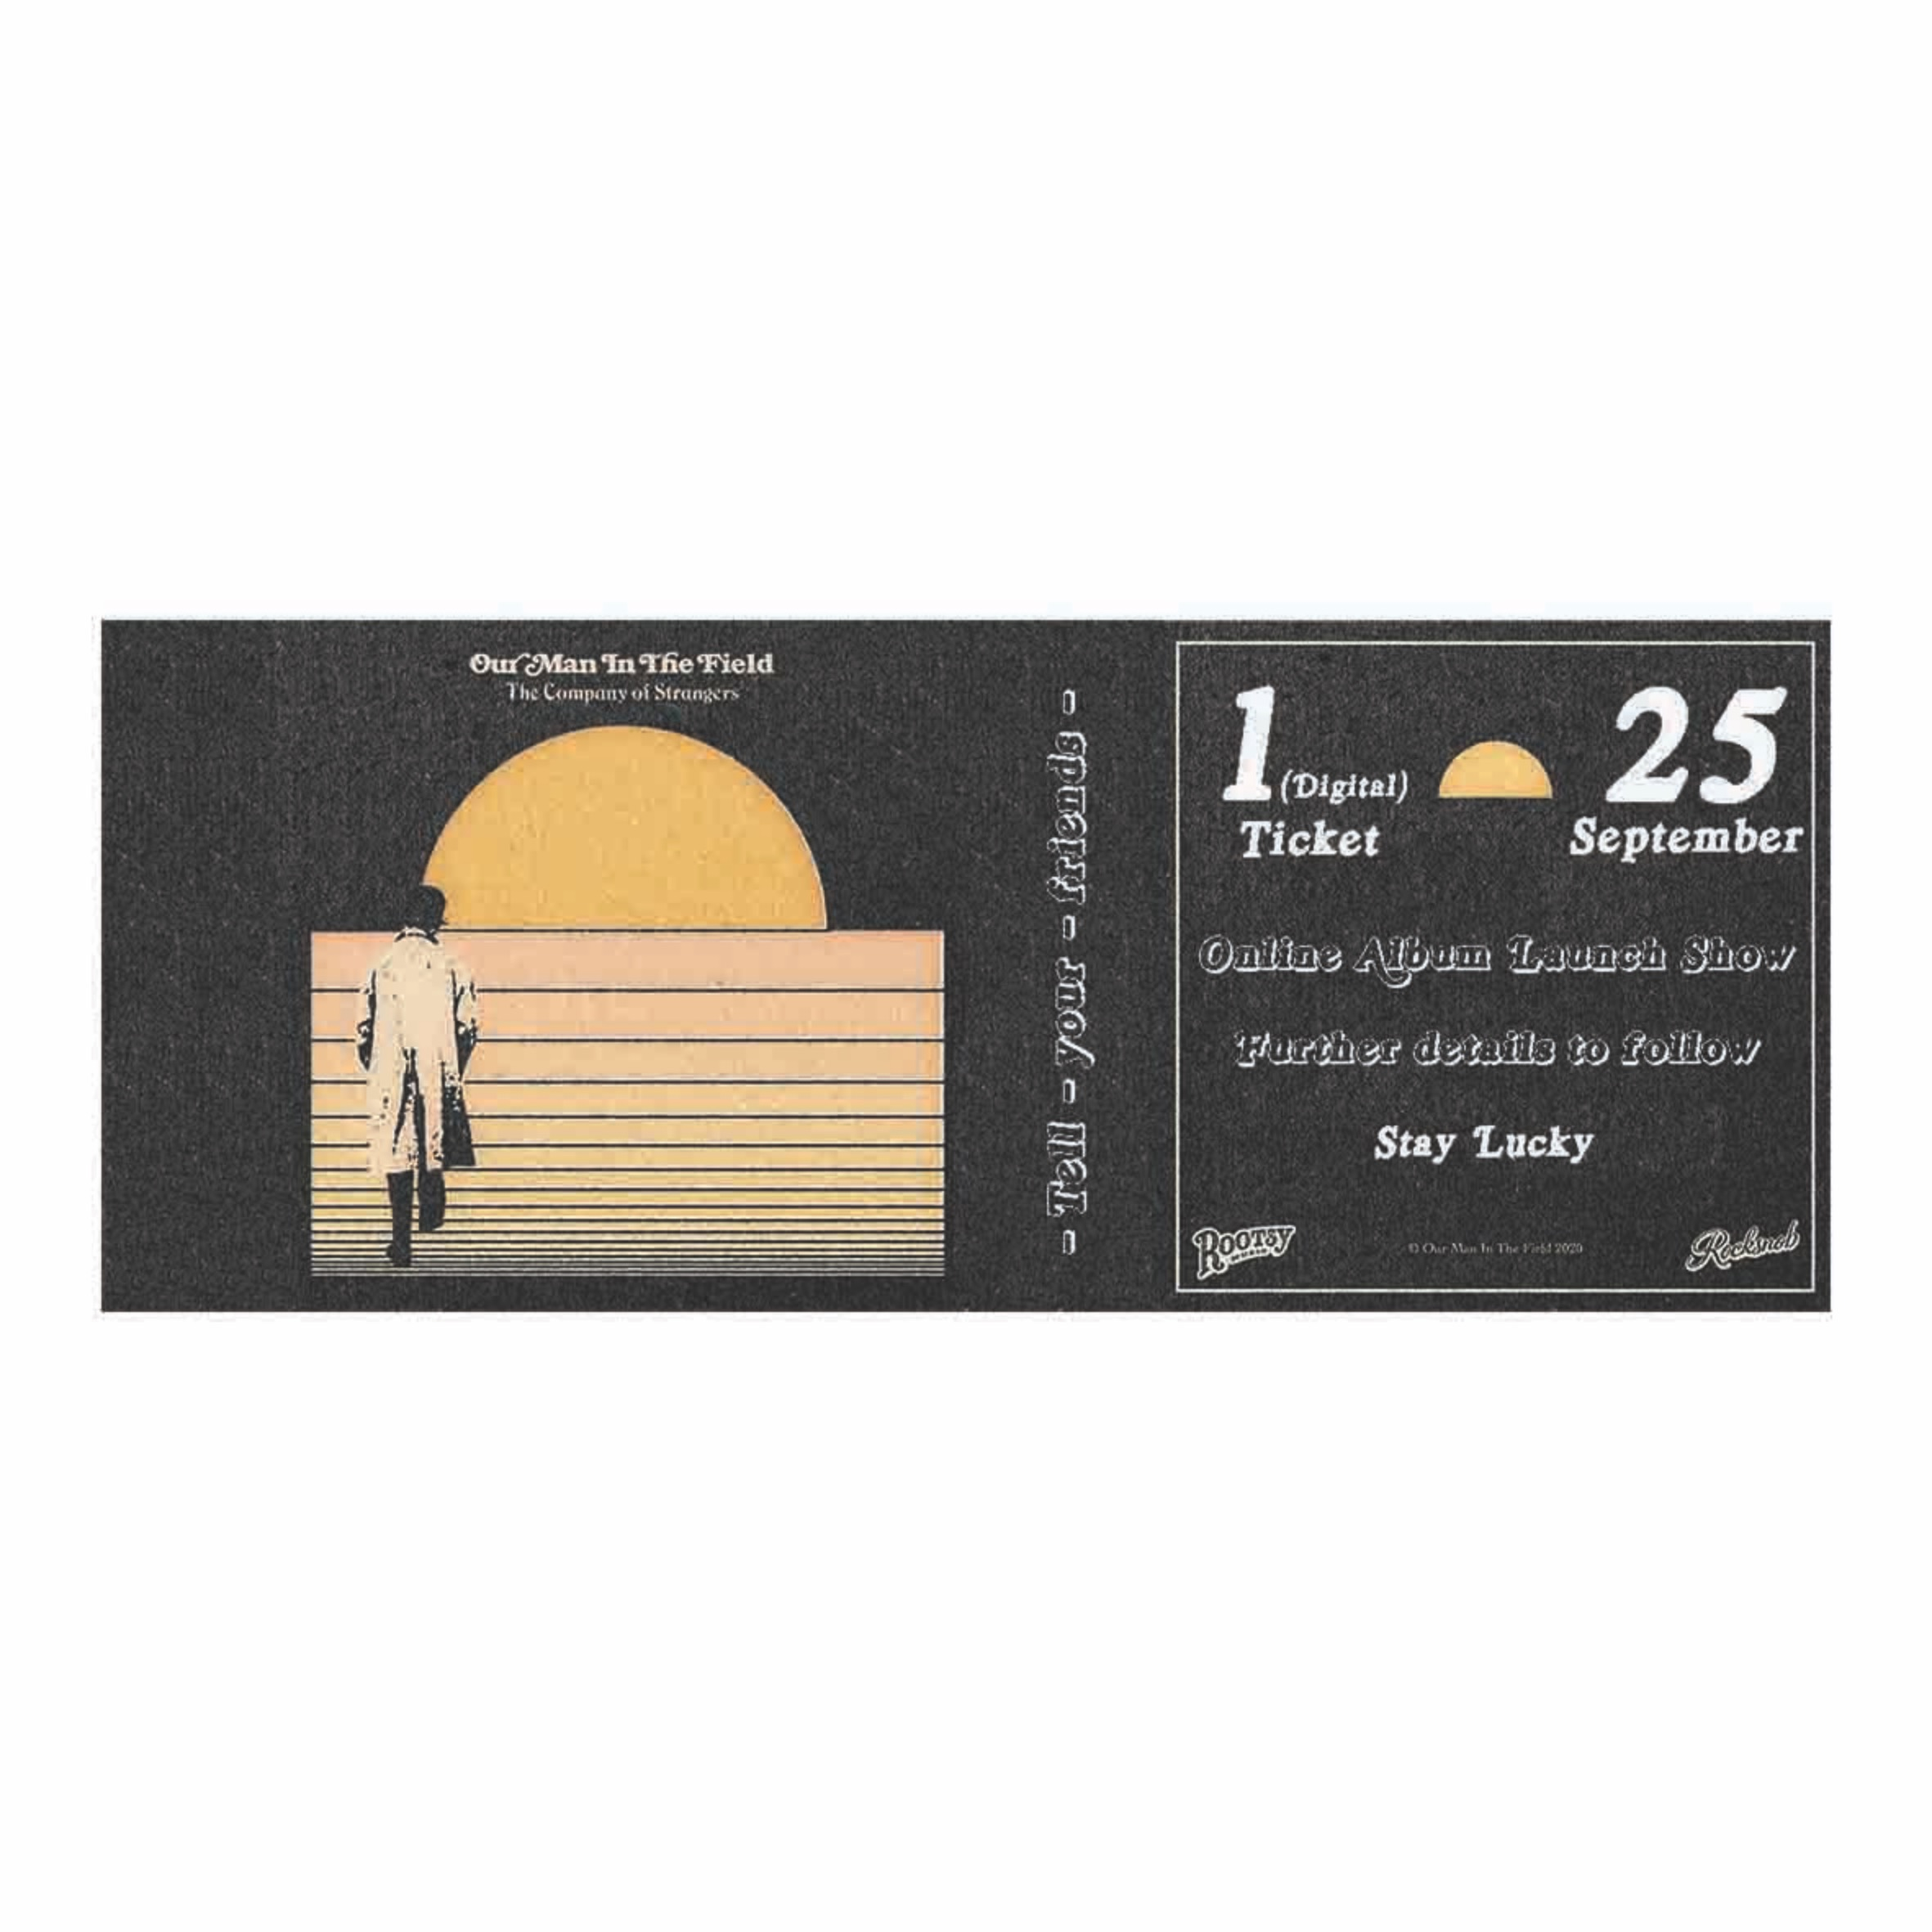 Individual ticket to online album launch show